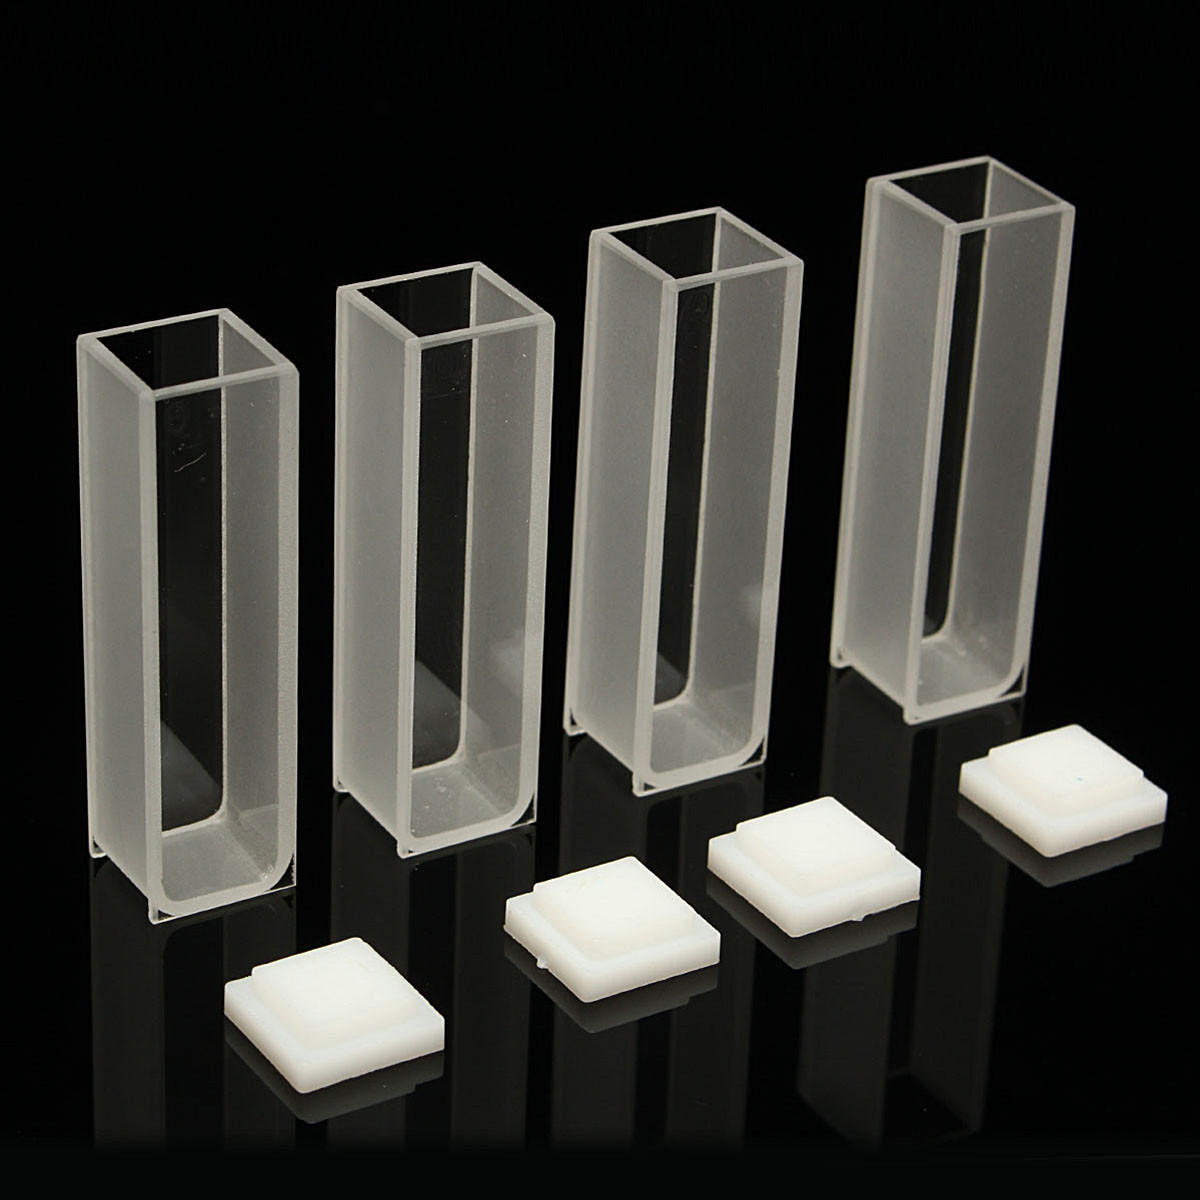 4Pcs 10mm Cuvette Cell Micro Optical Glass Spectrophotometer Cuvettes 3 5ml